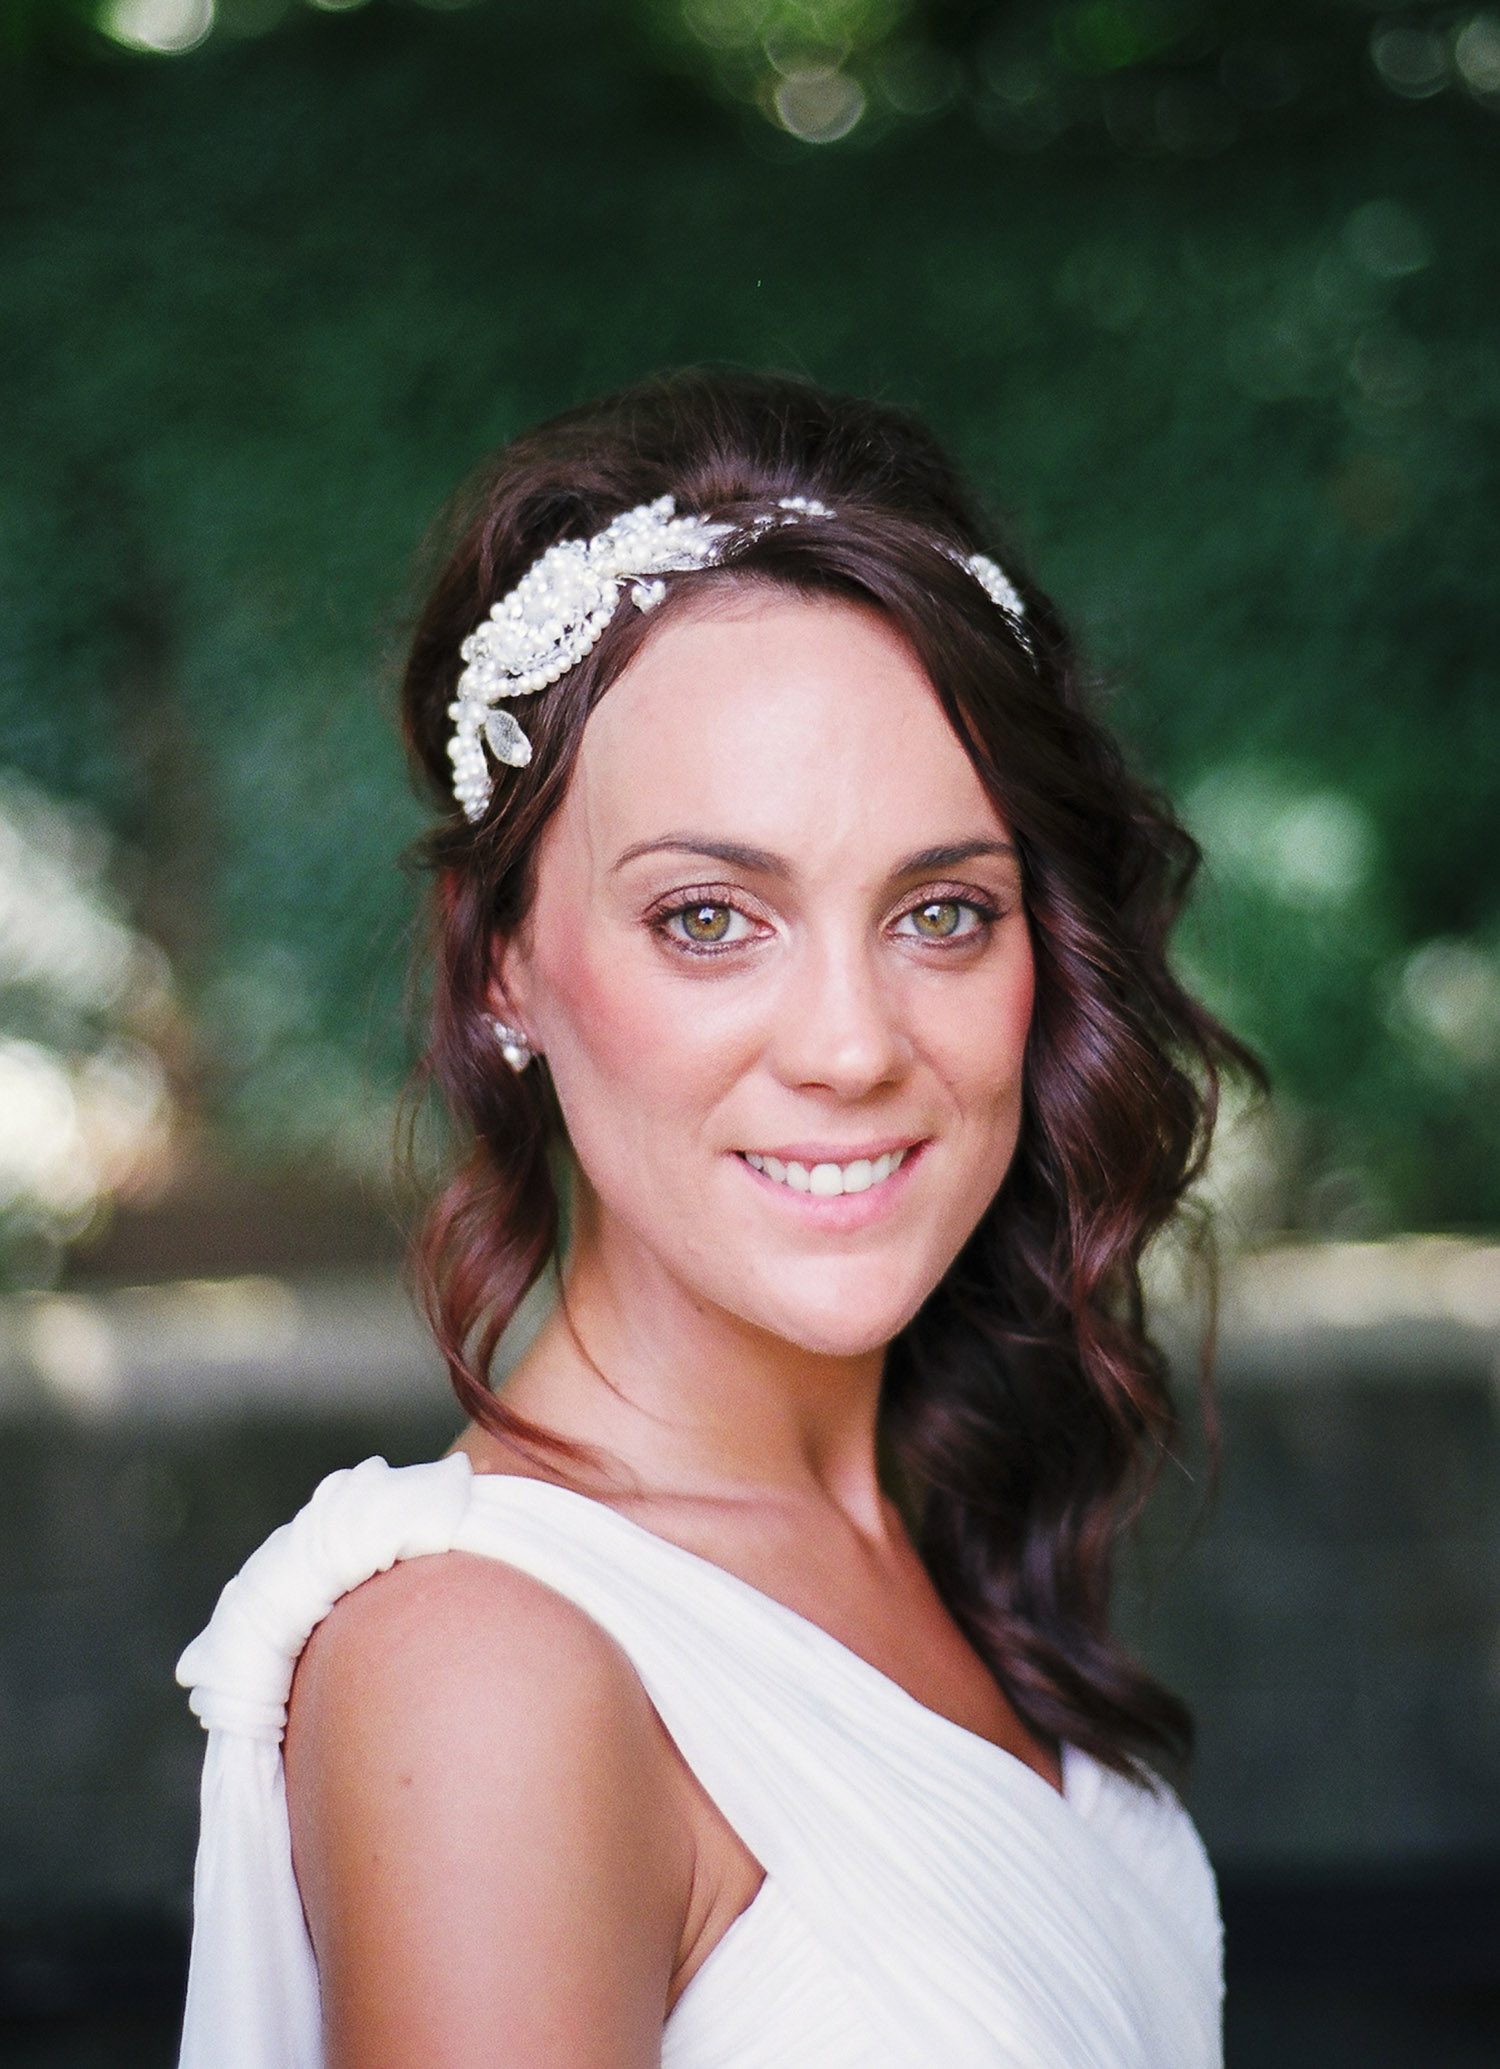 nyc conservatory garden mini wedding photo of bride smiling by wendy g photography